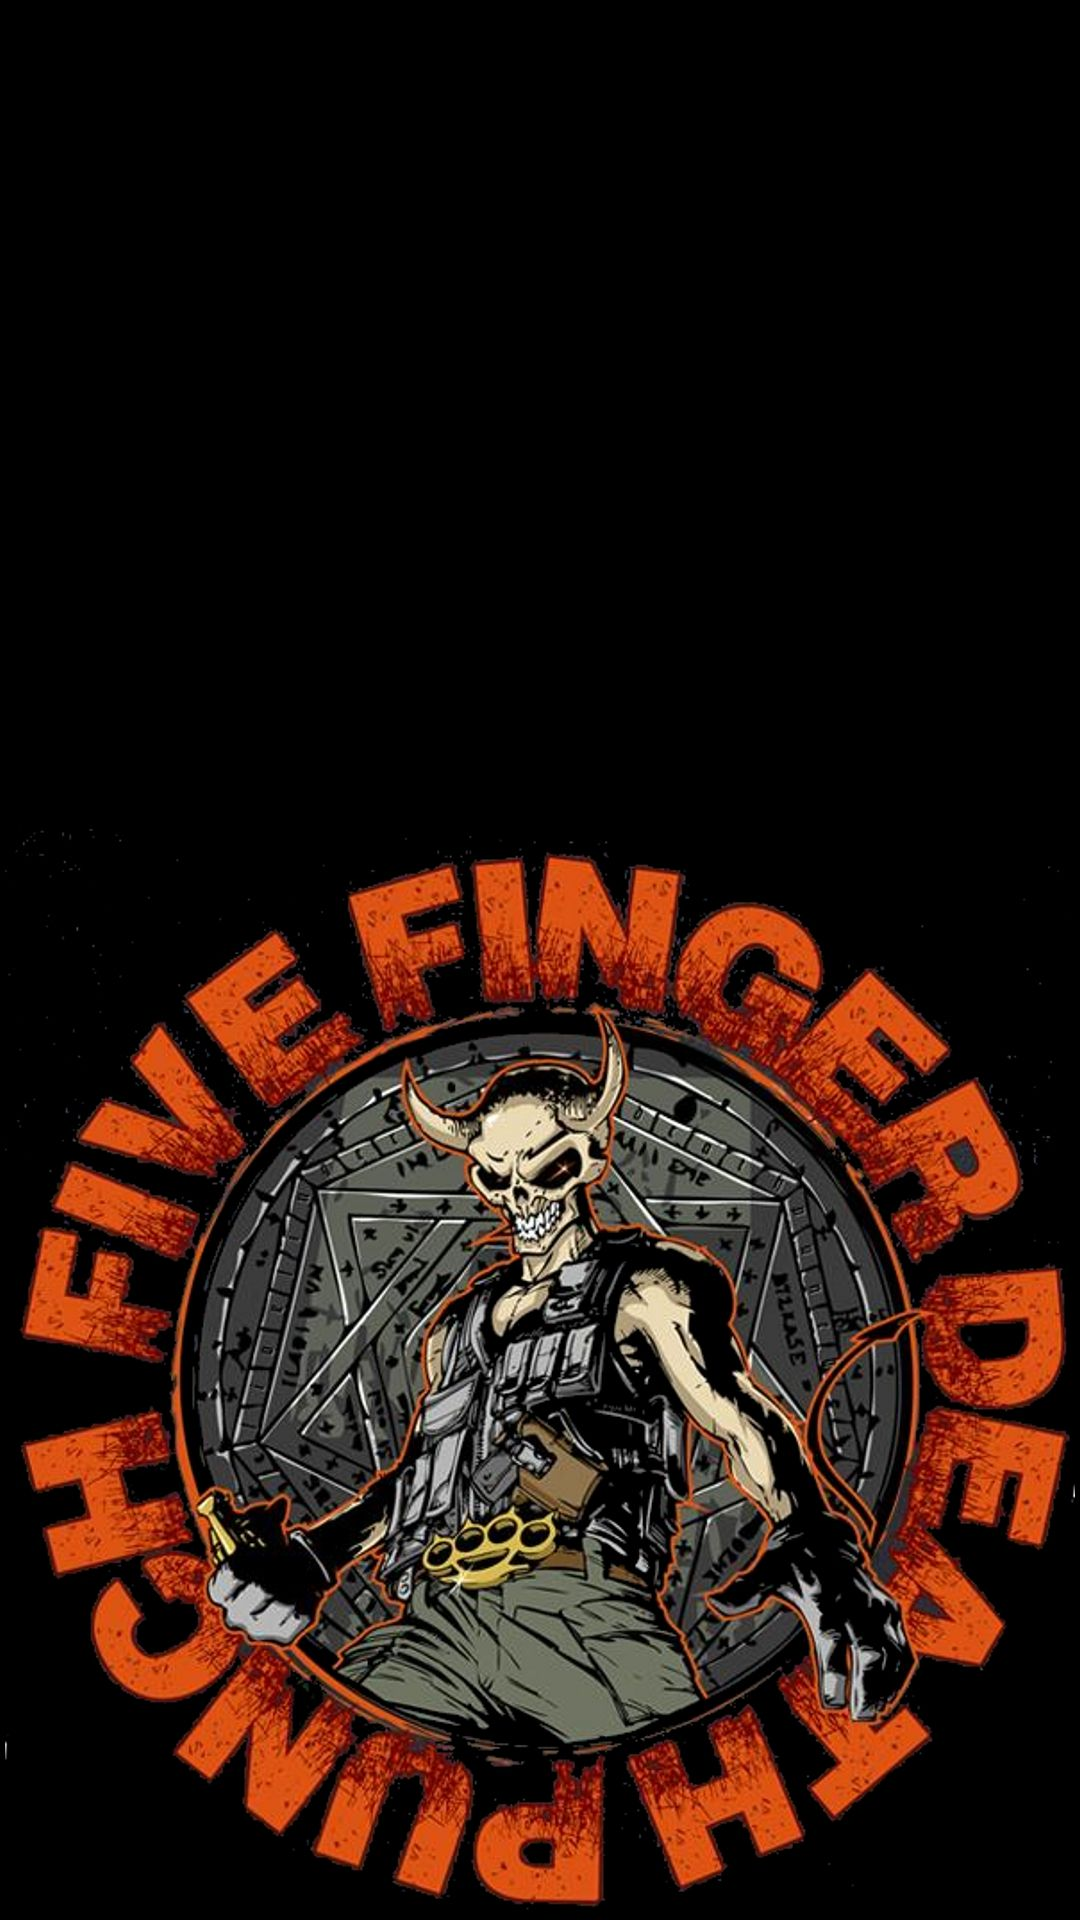 Pin by Steve Albers on Cool Wallpapers Metal band logos